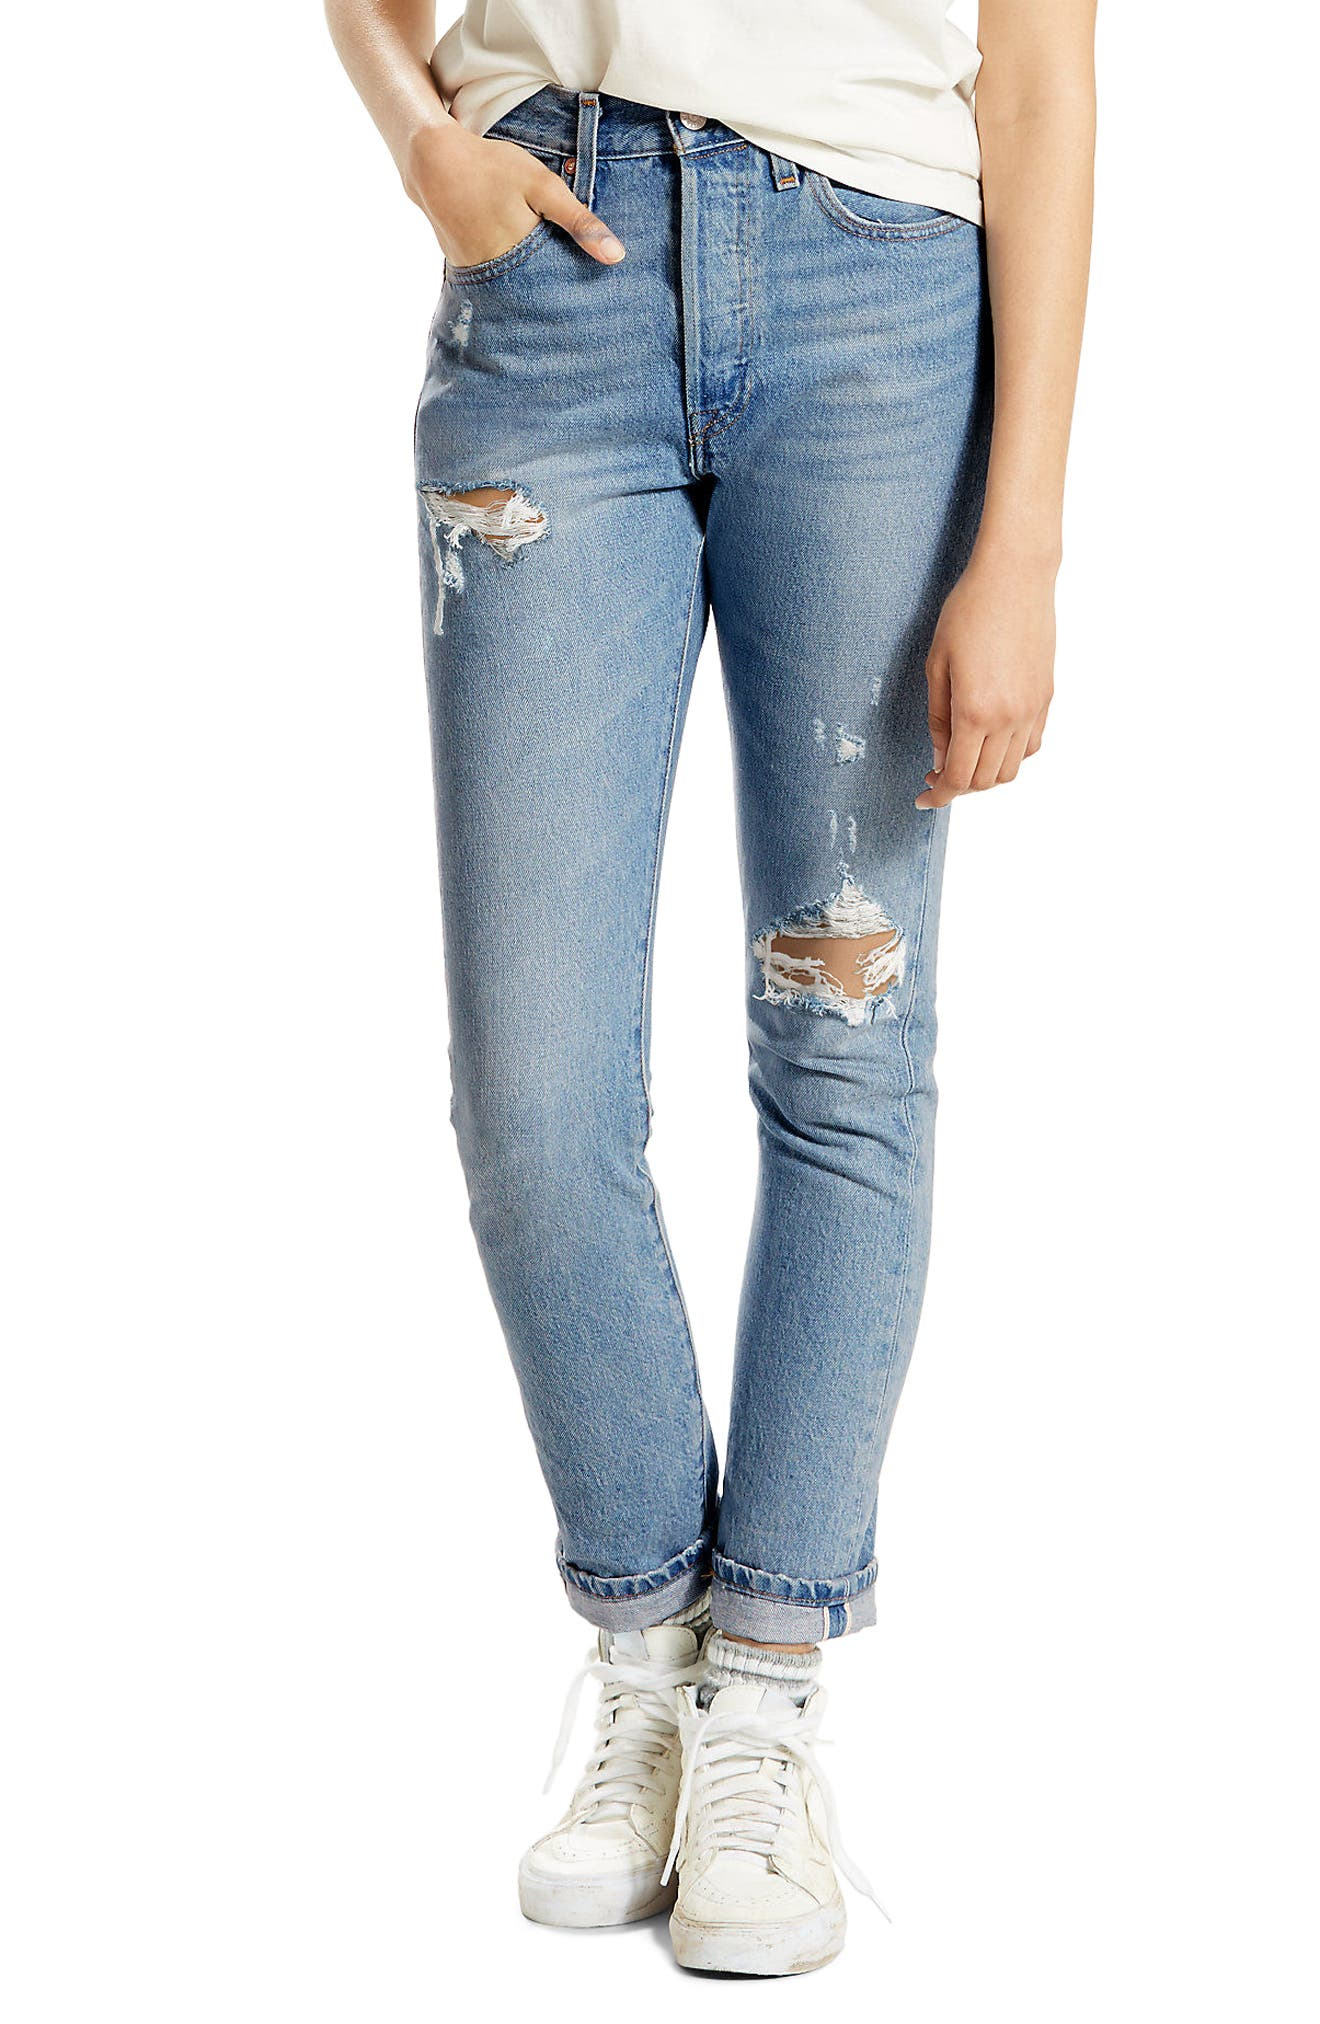 Main Image - Levi's® 501 High Waist Skinny Jeans (Can't Touch This)